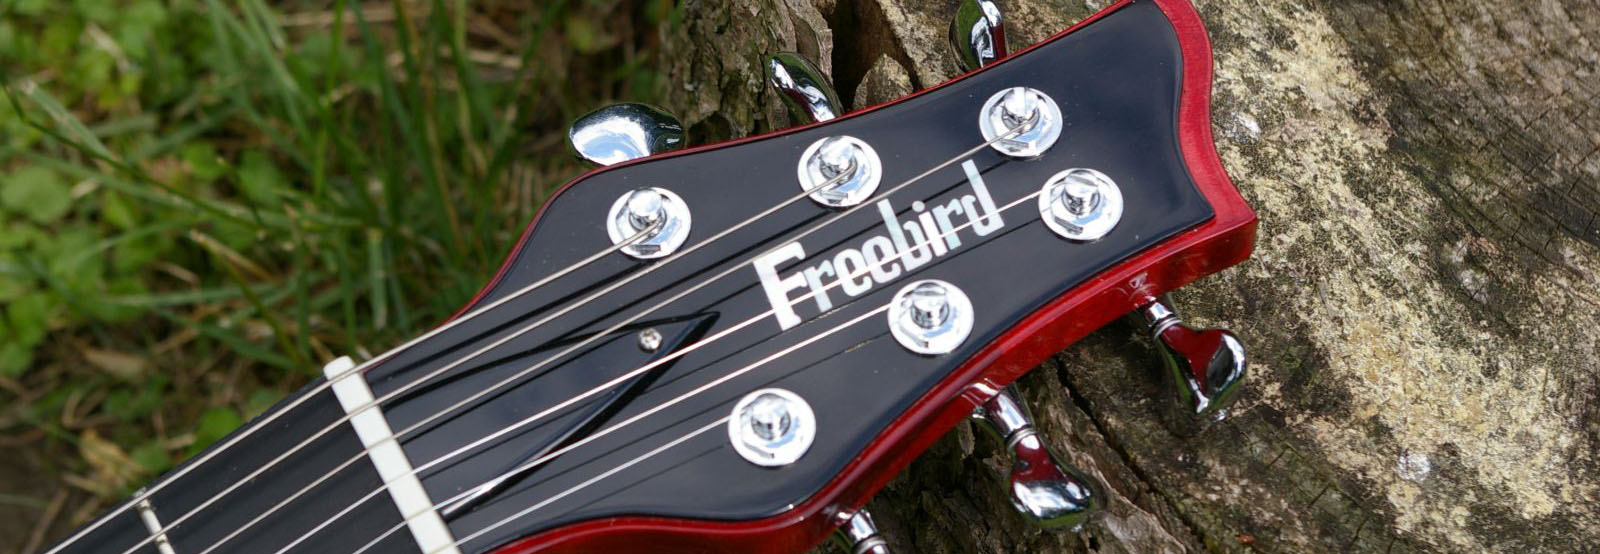 Freebird Guitars